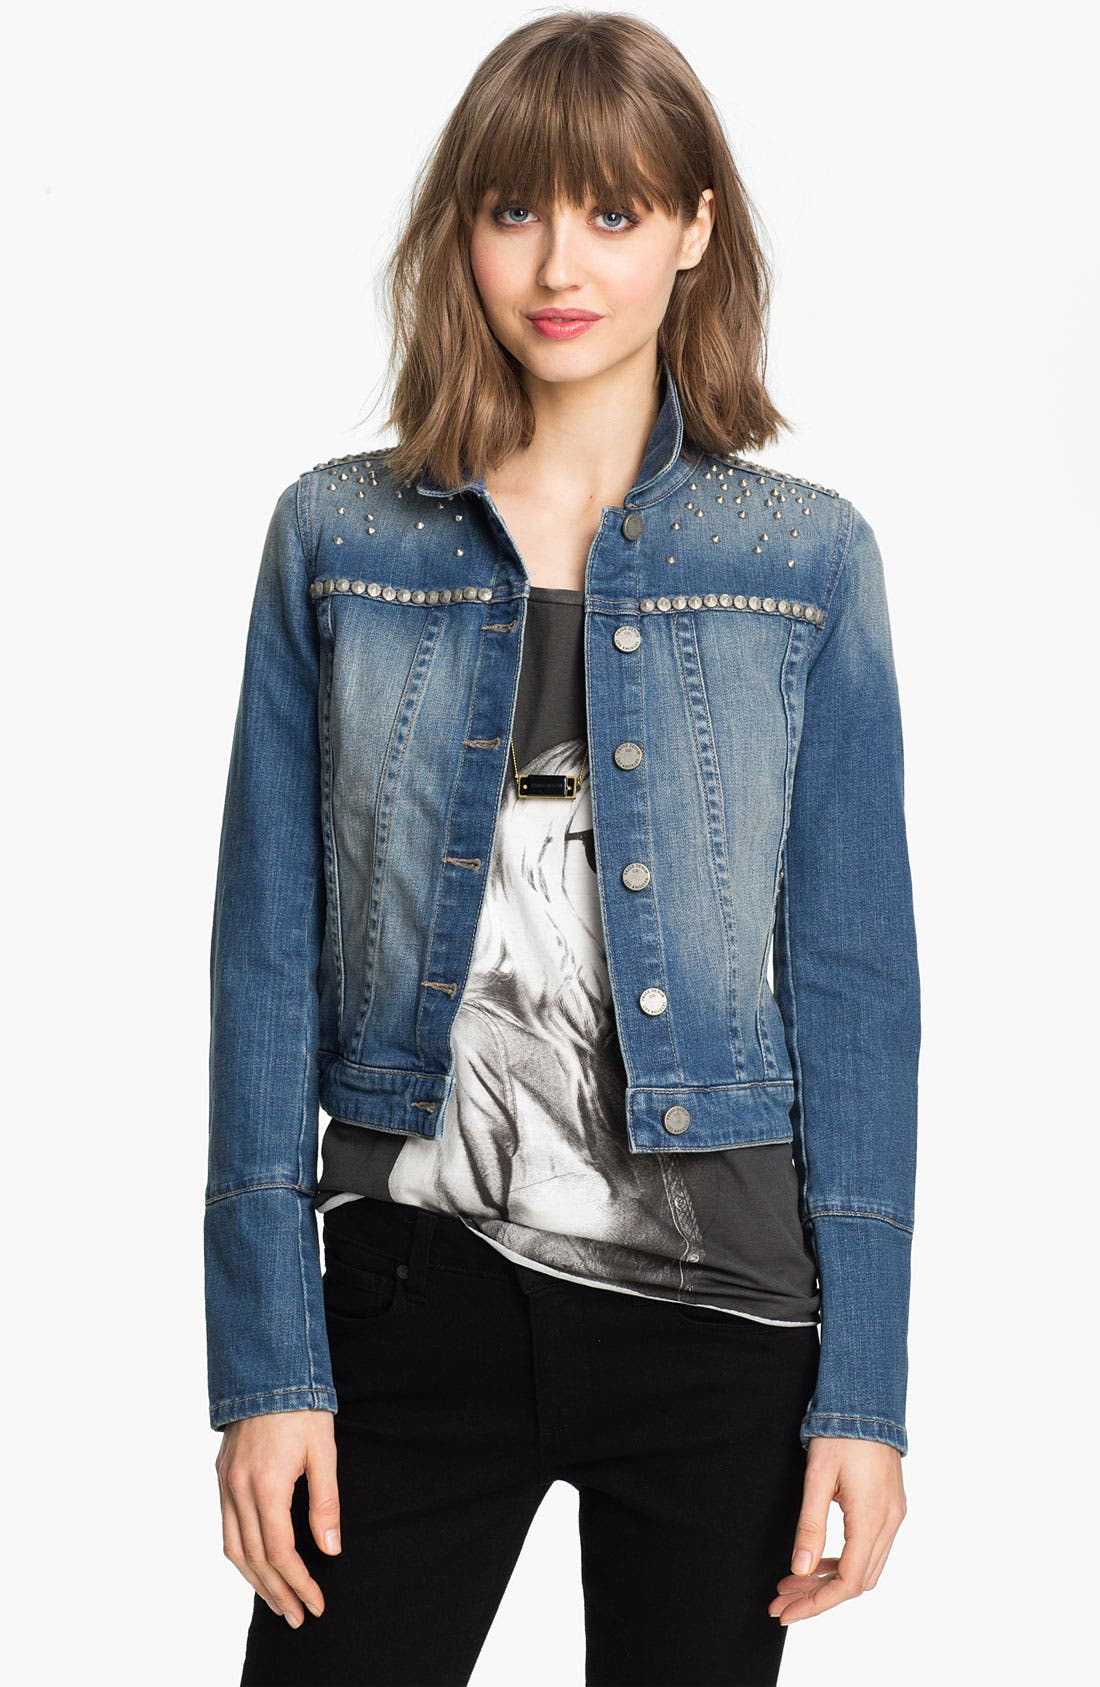 Alternate Image 1 Selected - Paige Denim 'Colbie' Studded Denim Jacket